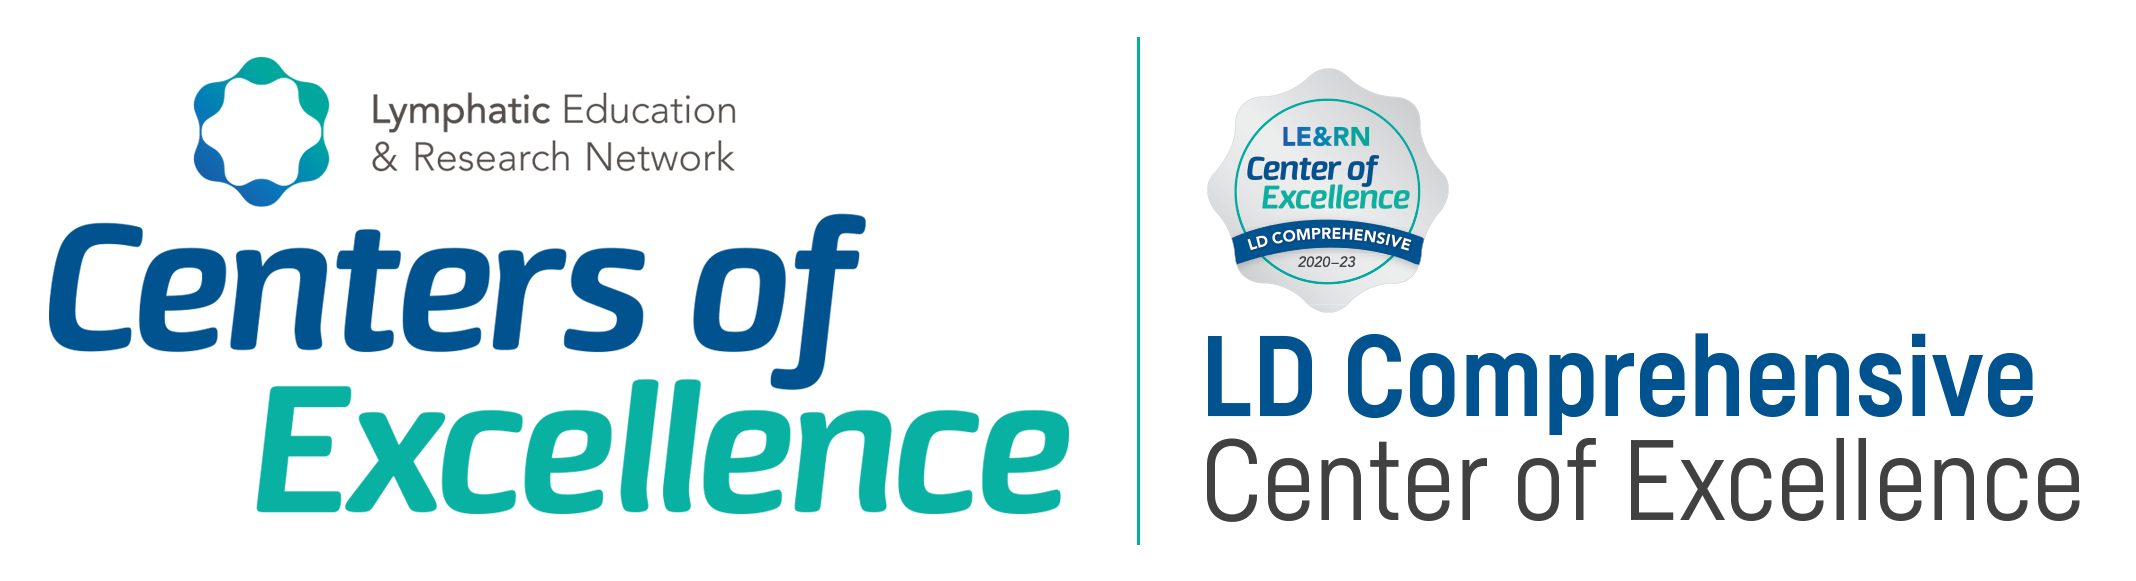 LE&RN Comprehensive Center of Excellence